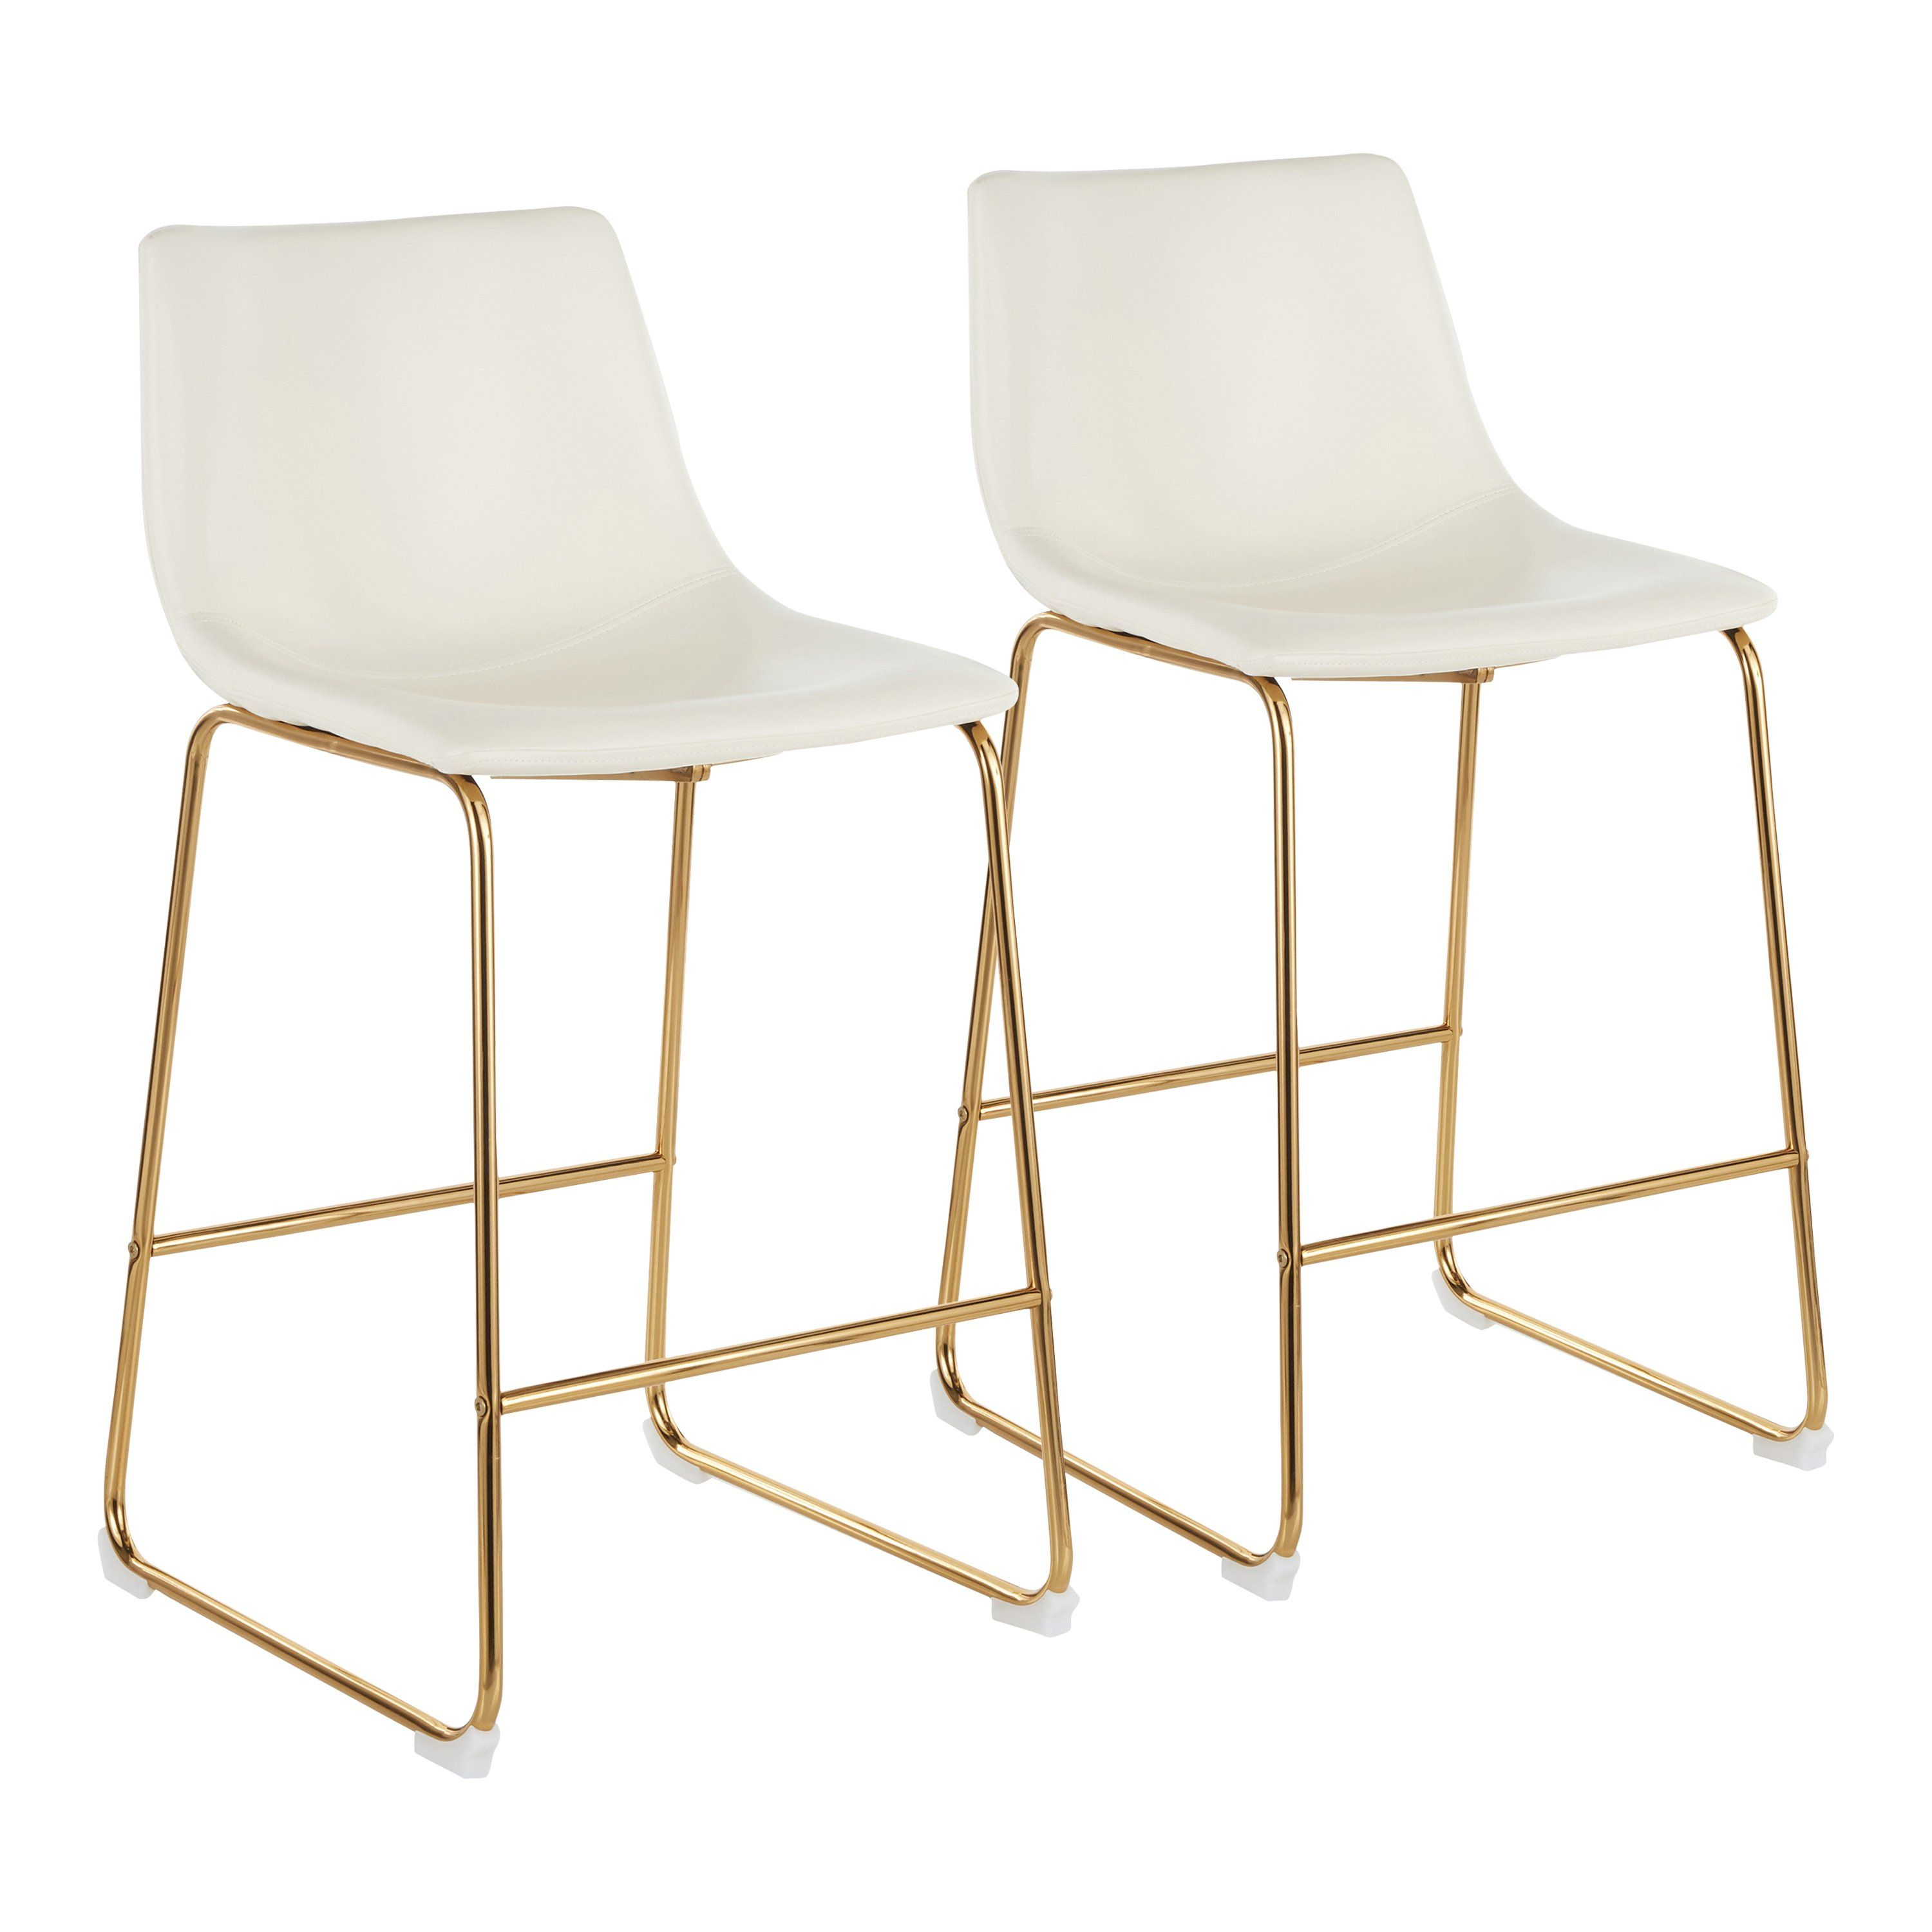 Contemporary White And Gold Counter Height Stool Set Of 2 Duke Leather Counter Stools Counter Stools Contemporary Counter Stools